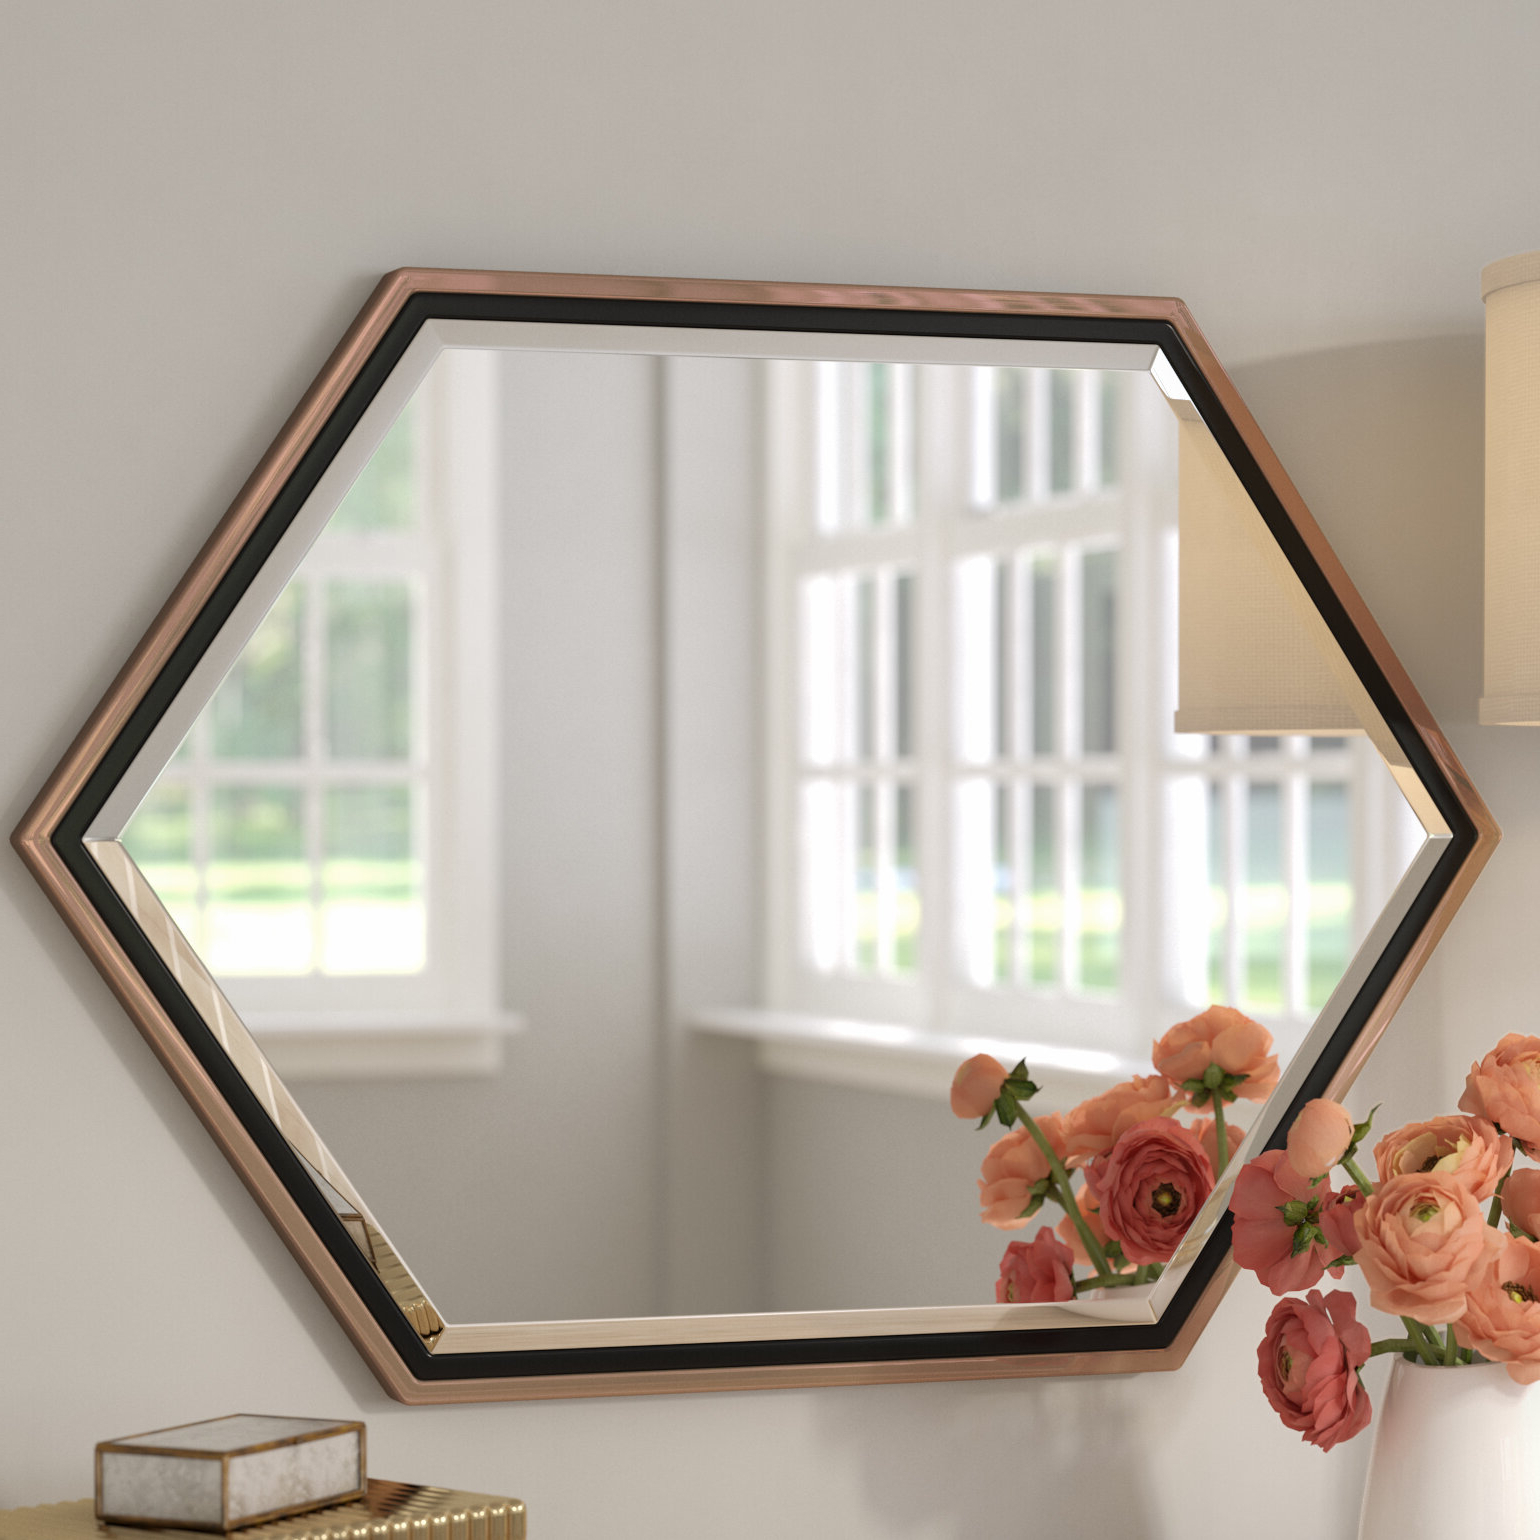 Fashionable Contemporary Metal Frame Accent Wall Mirror Pertaining To Entryway Wall Mirrors (View 6 of 20)